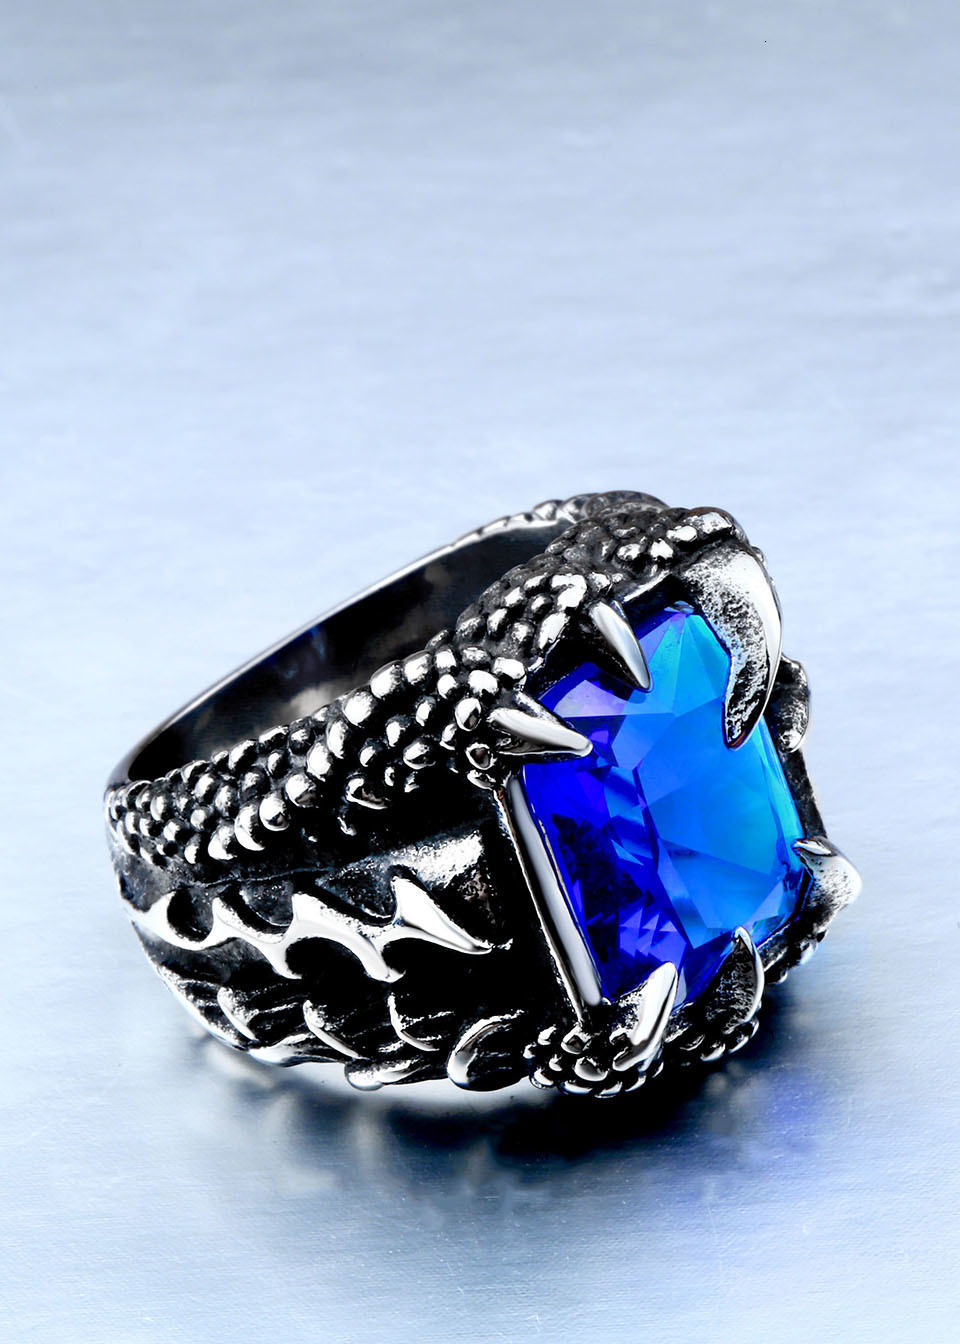 Hb92196d1ea1c4877be7f0f35c2205509s - Paladin Dragon Claw Ring